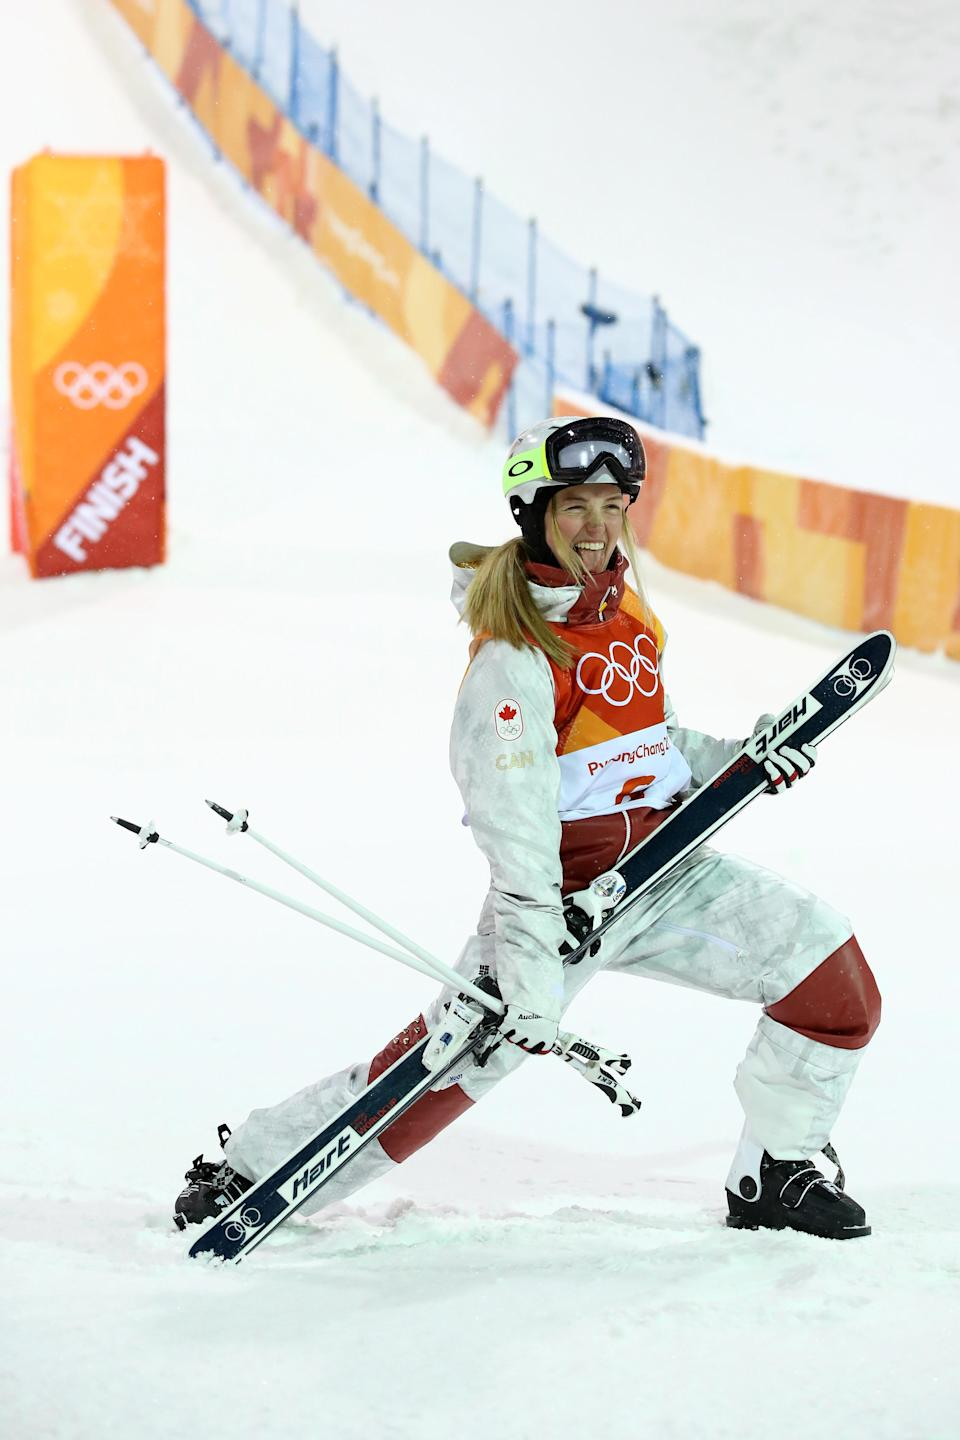 <p>Justine Dufour-Lapointe of Canada celebrates winning silver during the Freestyle Skiing Ladies' Moguls Final on day two of the PyeongChang 2018 Winter Olympic Games at Phoenix Snow Park on February 11, 2018 in Pyeongchang-gun, South Korea. (Photo by Cameron Spencer/Getty Images) </p>